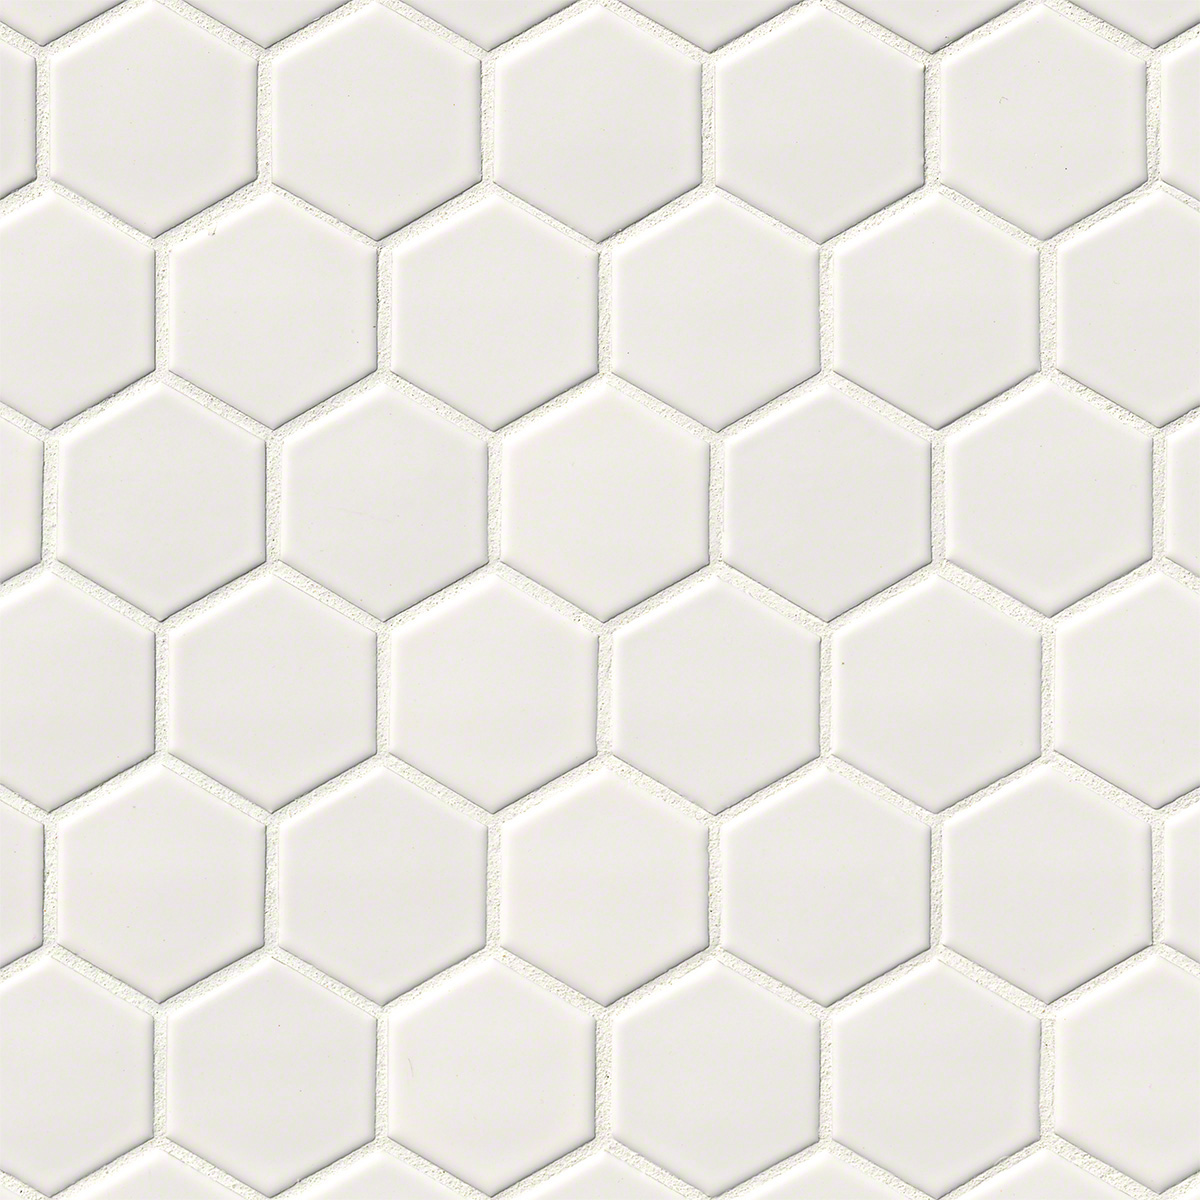 Domino White Glossy 2X2 Hexagon Mosaic